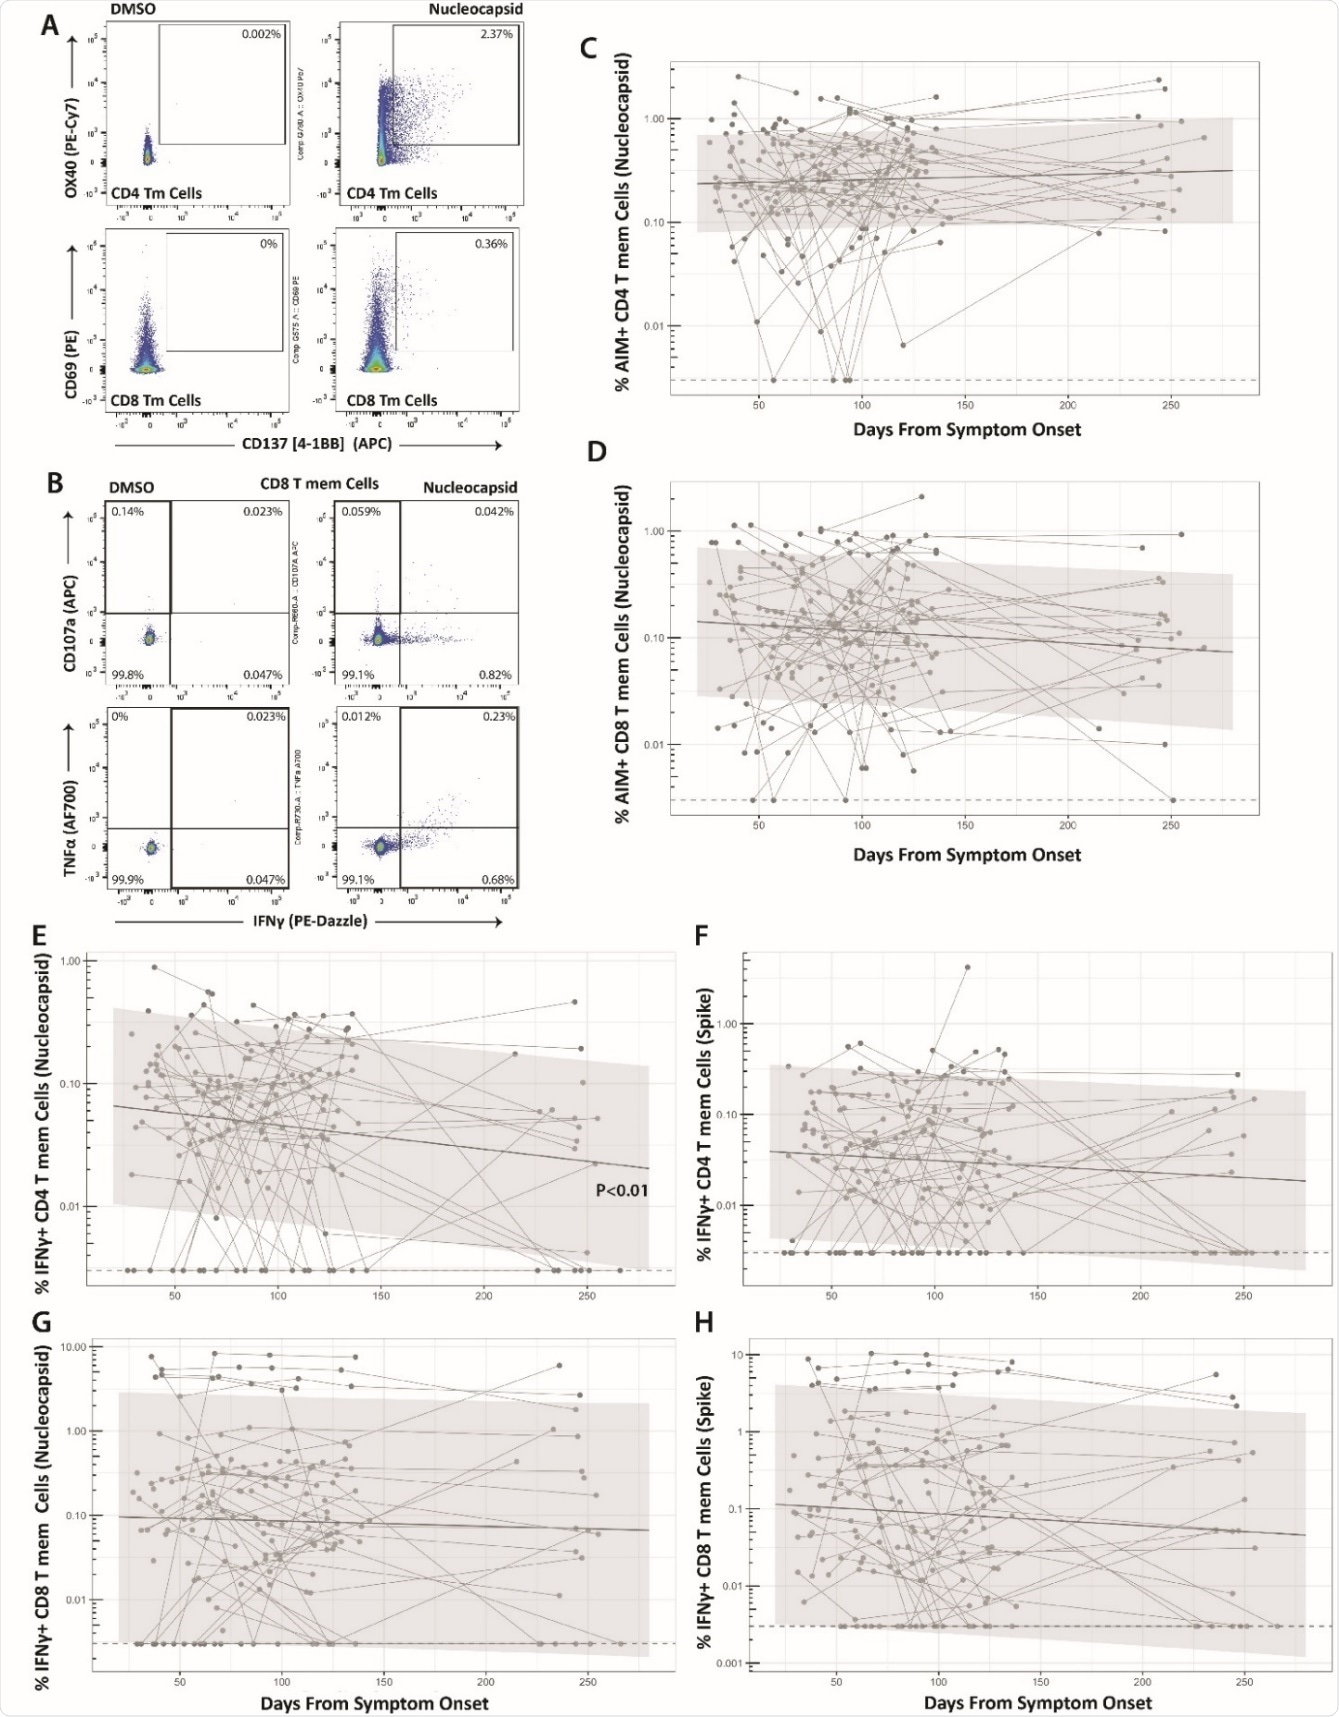 Long-term durability of SARS-CoV-2-specific CD4 and CD8 cell responses. Gating strategy for identifying SARSCoV-2-specific memory T cell responses in the activation-induced marker (AIM) (A) and intracellular cytokine staining (ICS) (B) assays. Percentage of AIM+ N-specific CD4+ (C) and CD8+ (D) T cell responses over time (S-specific responses were similar and are shown in Supplementary Figure 3). Percentage of IFNγ+ Nucleocapsid (N)- or Spike (S)-specific CD4 (E-F) and CD8 (G-H) T cell responses over time. Points and connecting lines represent raw data for each individual. Solid line and shaded region represent the median model prediction and 95% prediction interval from linear mixed effects modeling including individual effects. Dashed lines represent assay limits of detection. T mem = T memory cells.